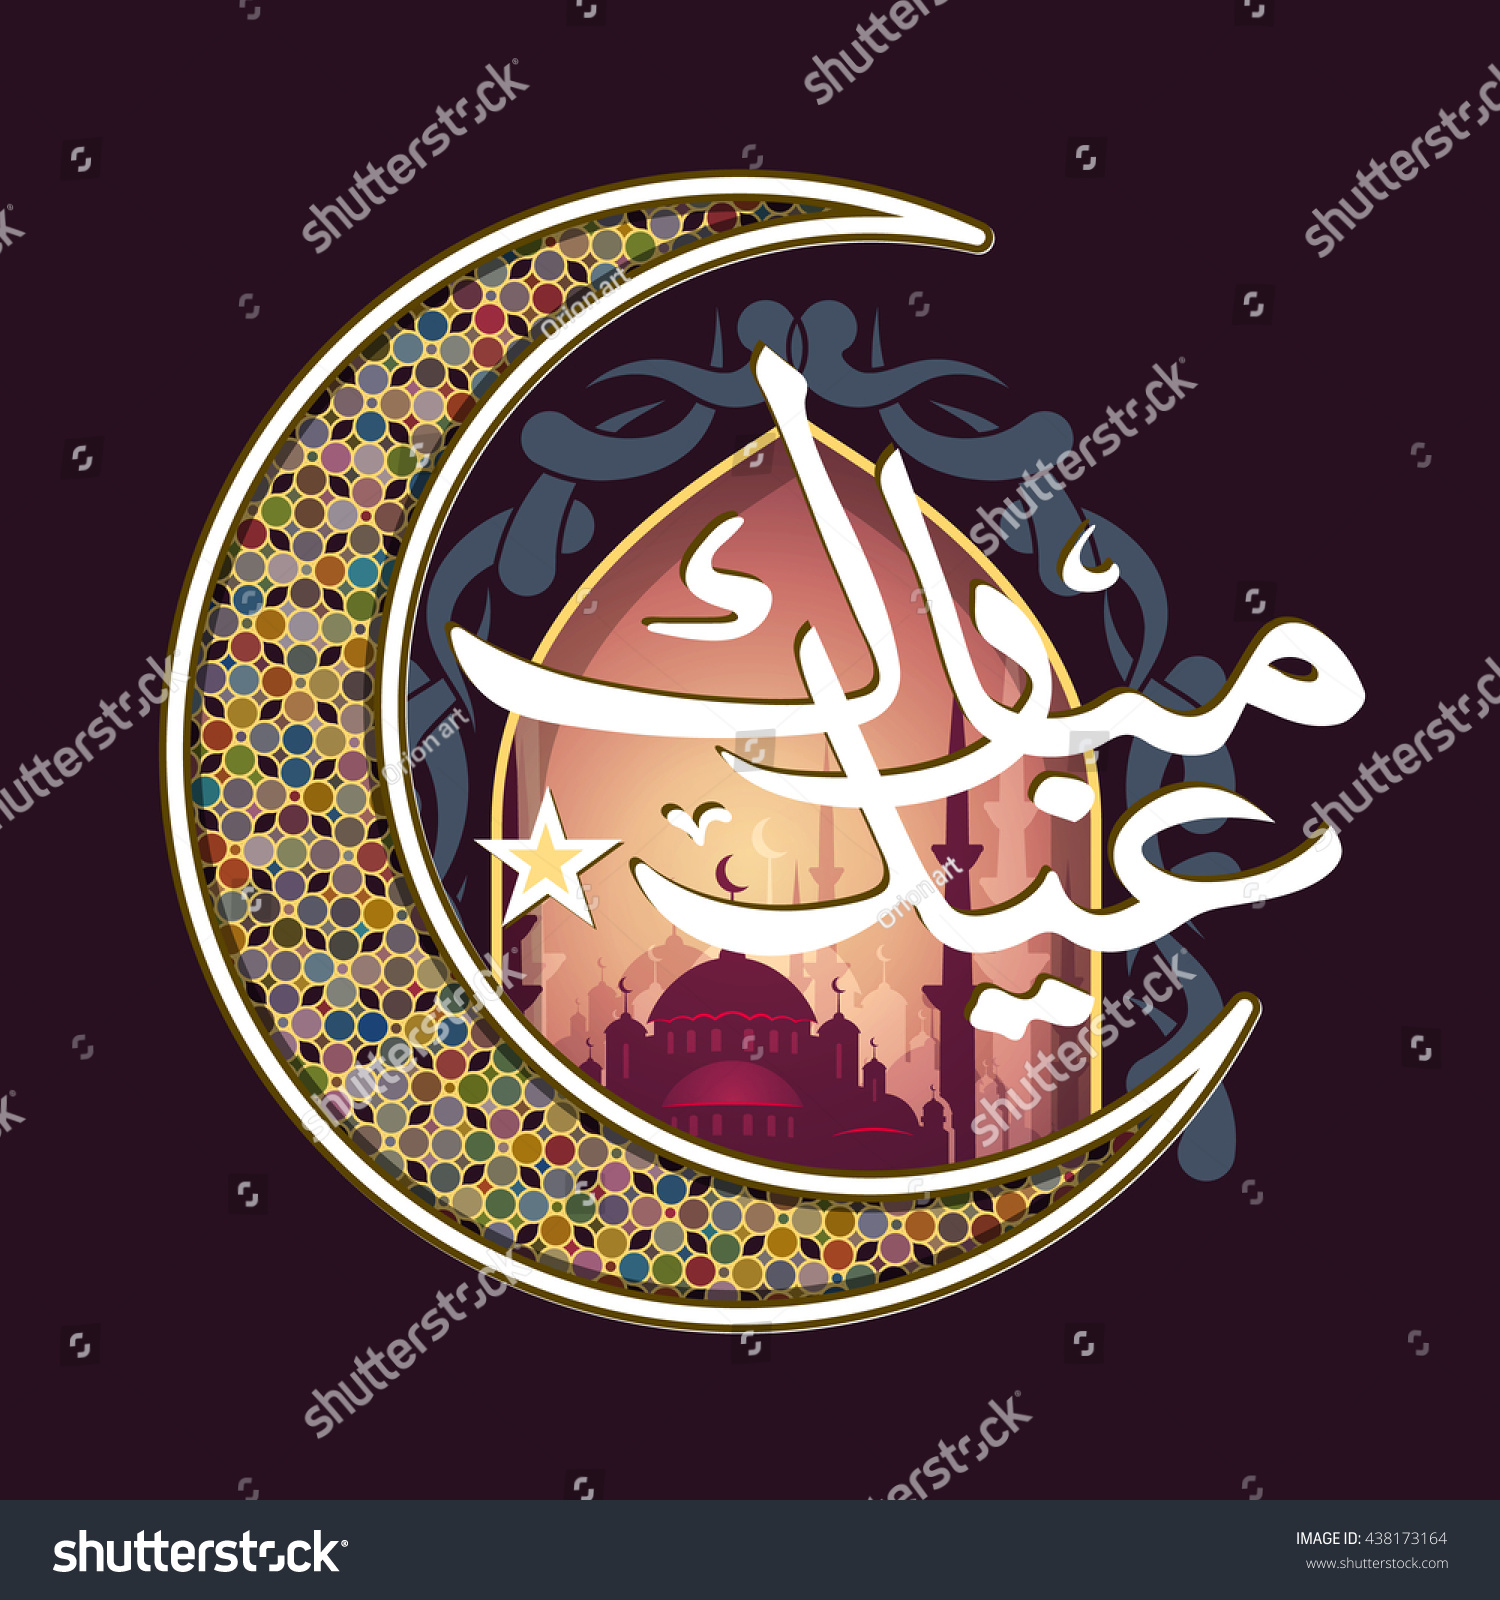 Download Idd Eid Al-Fitr Feast - stock-photo-calligraphy-of-arabic-text-eid-al-fitr-feast-of-breaking-the-fast-holiday-greeting-card-in-438173164  Collection_621918 .jpg